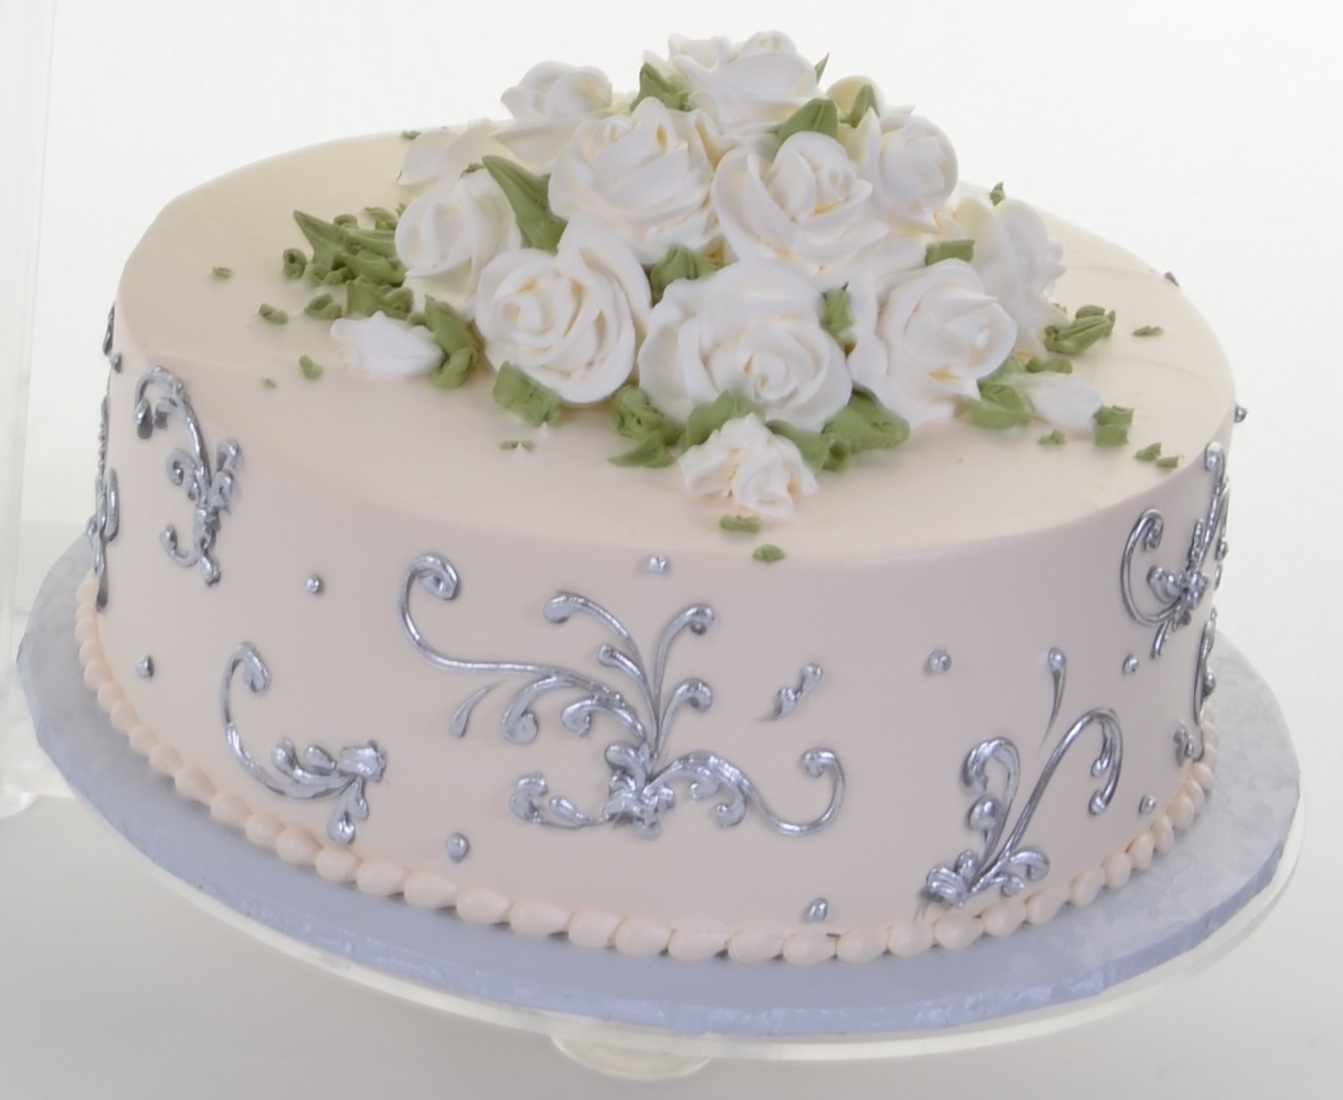 Single Tier Wedding Cakes – Wedding Cakes | Fresh Bakery | Pastry ...